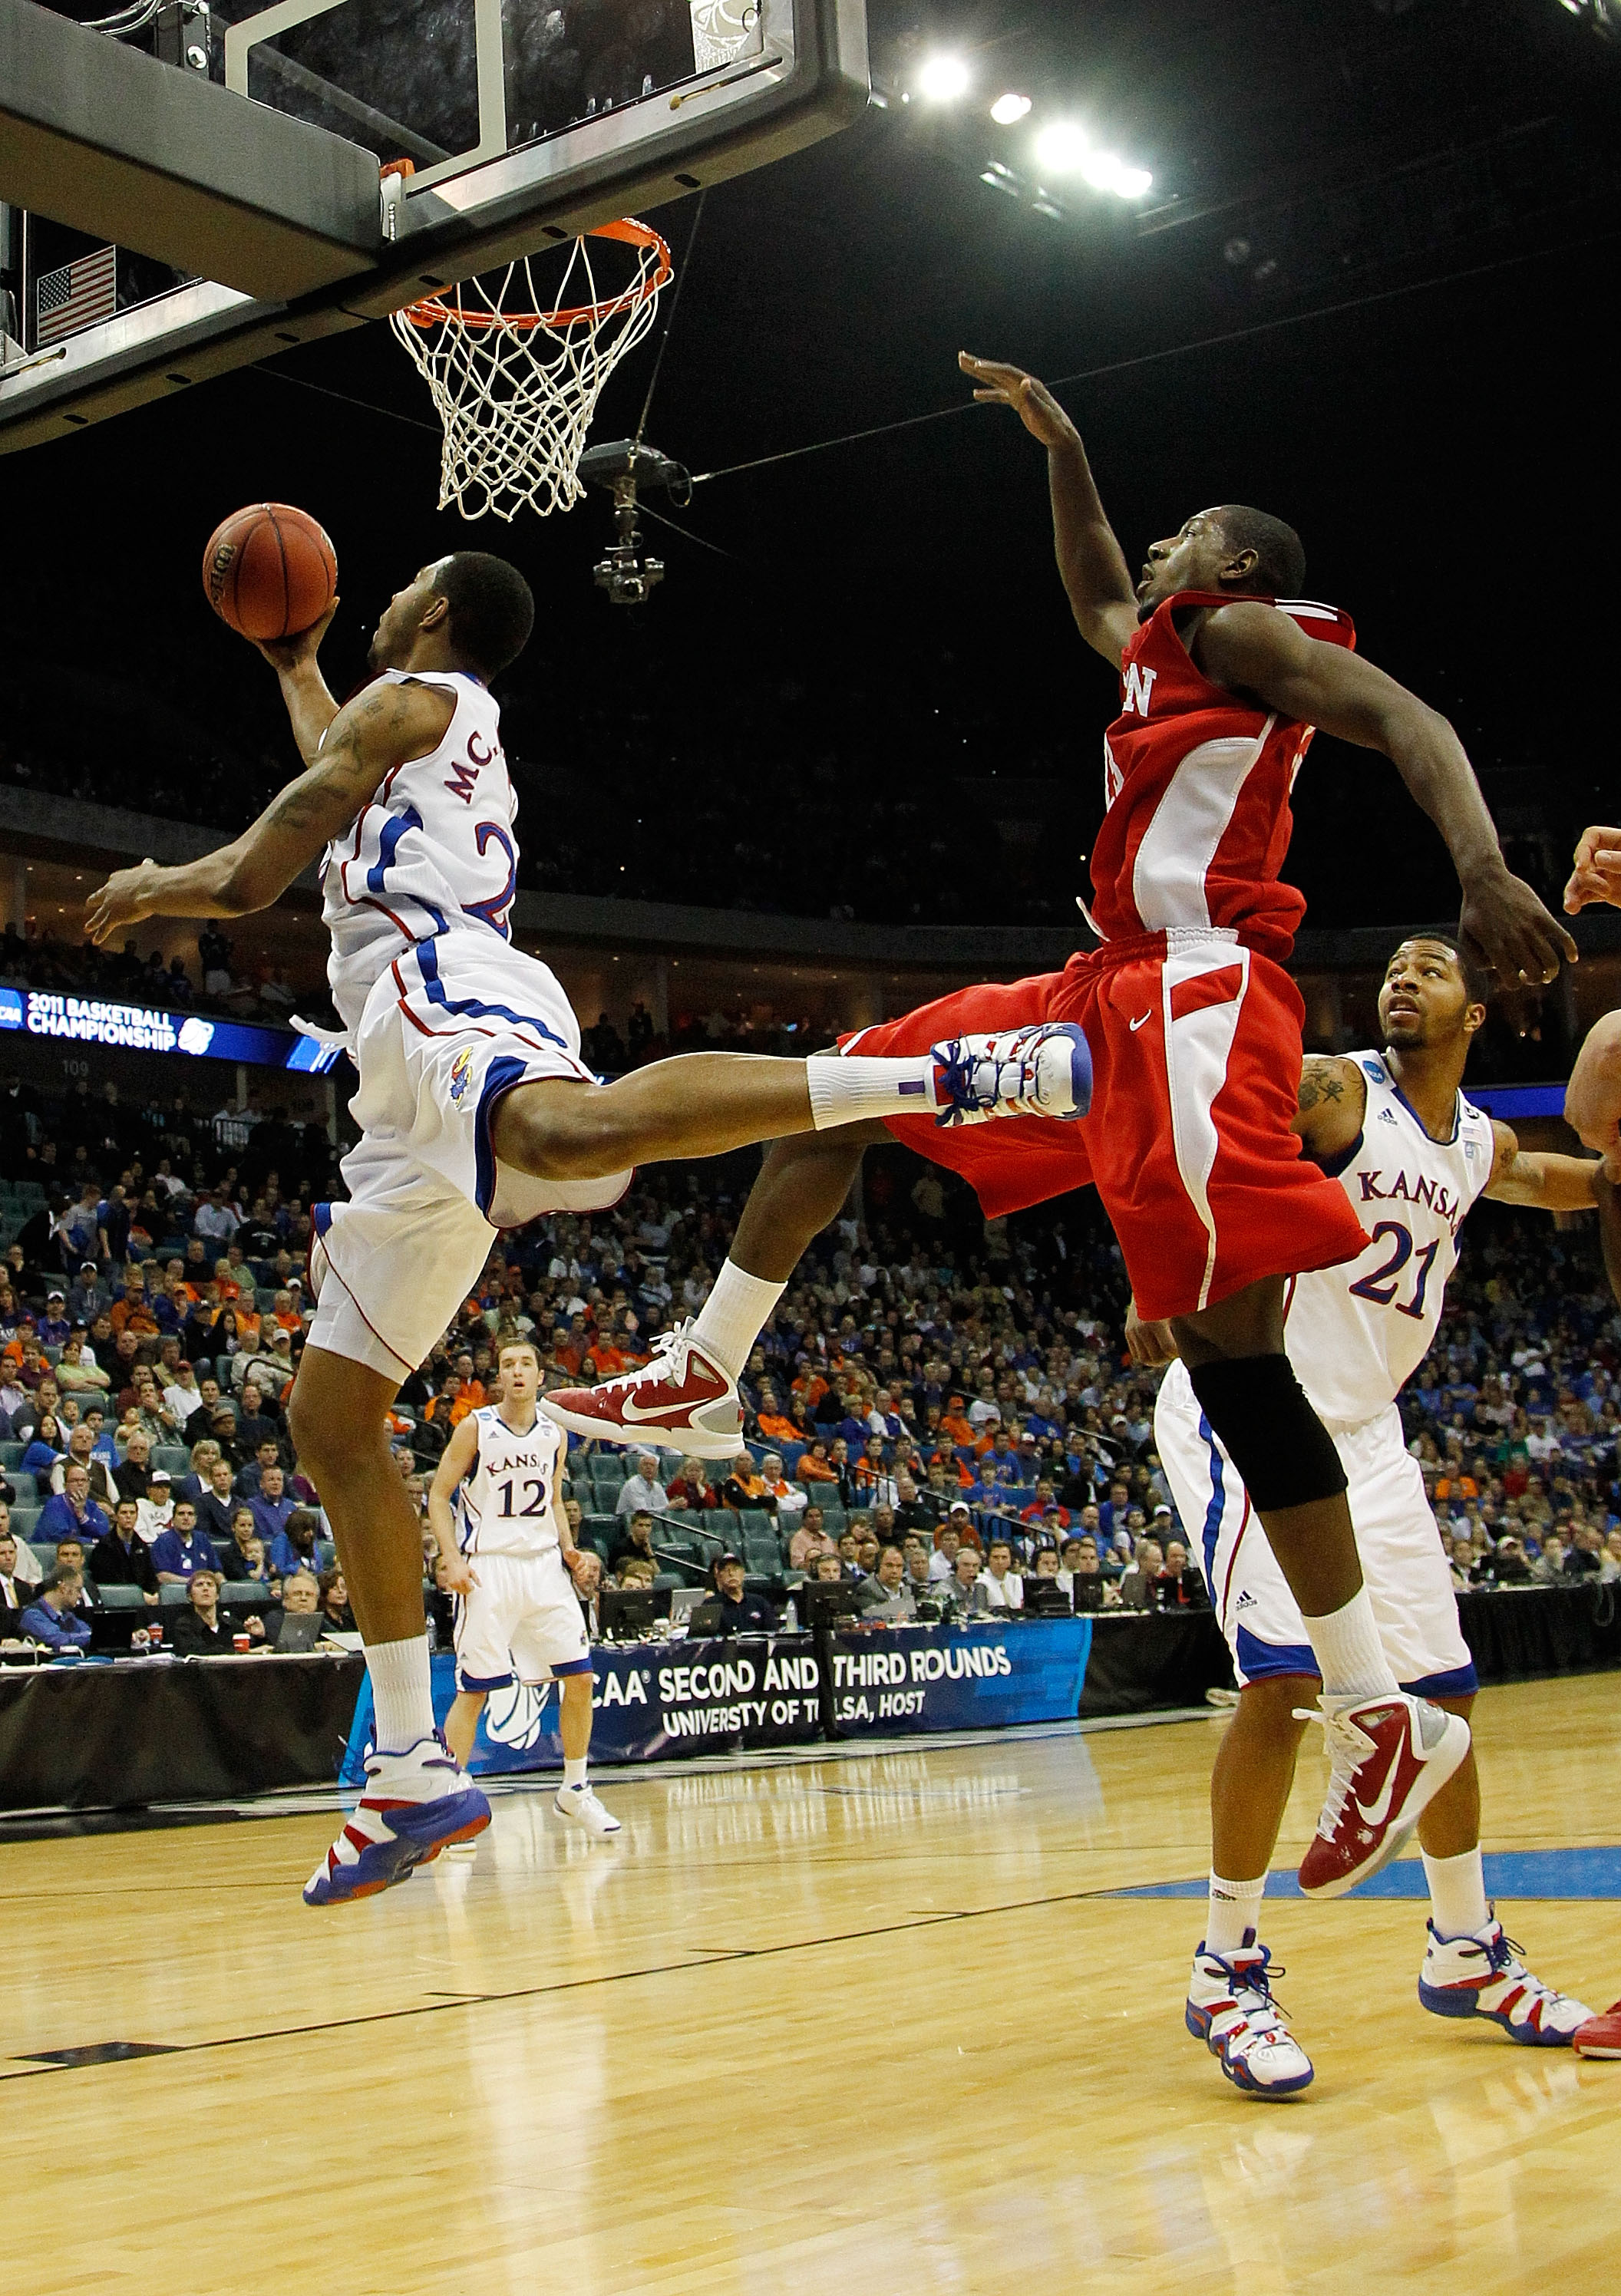 TULSA, OK - MARCH 18:  Marcus Morris #22 of the Kansas Jayhawks throws up a shot against the Boston University Terriers during the second round of the 2011 NCAA men's basketball tournament at BOK Center on March 18, 2011 in Tulsa, Oklahoma.  (Photo by Tom